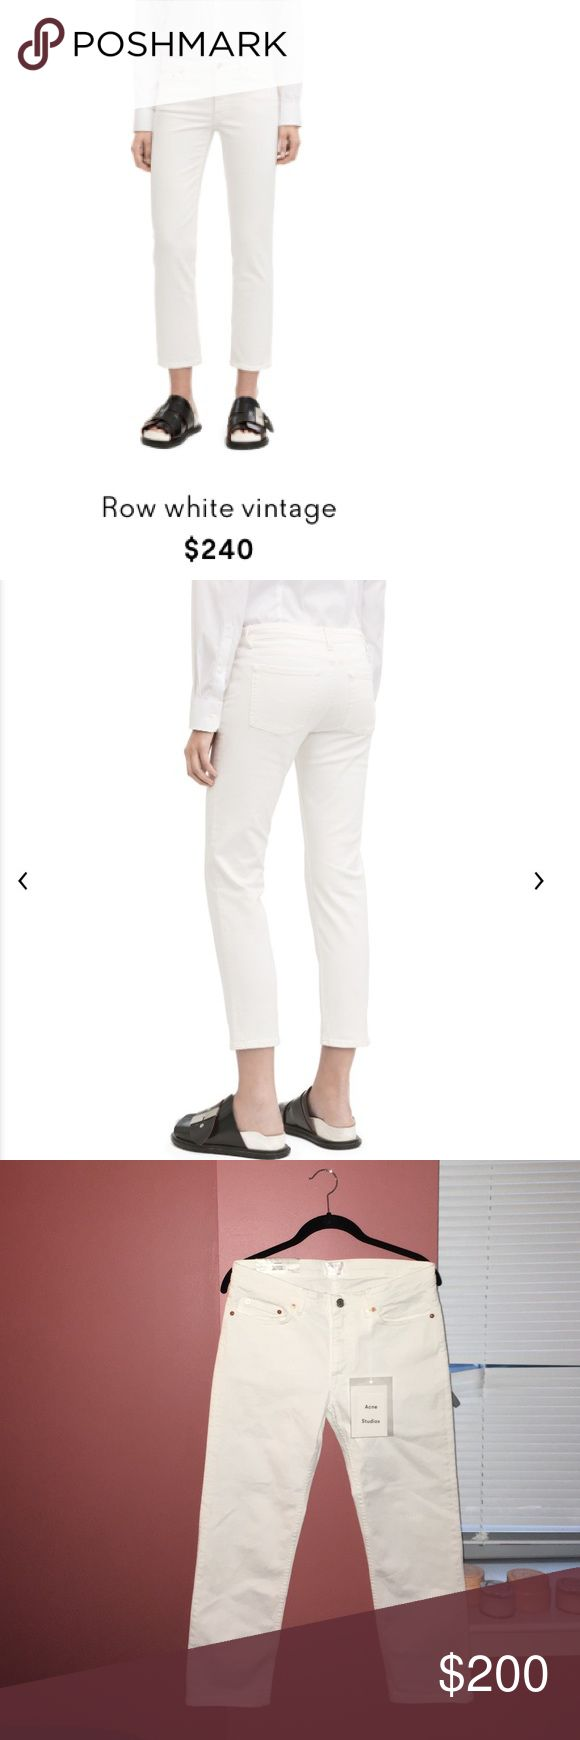 Acne Studios Row White Vintage Jeans Acne Studios Row white vintage are boyfriend fit jeans with a narrow thigh that tapers from the knee. This style is constructed of a comfort stretch natural white denim with a very heavy stonewash and slightly distressed seams. Classic 5 pocket design; Zippered fly front closure; Secures at waist band with bachelor button. Made in Italy Acne Jeans Ankle & Cropped